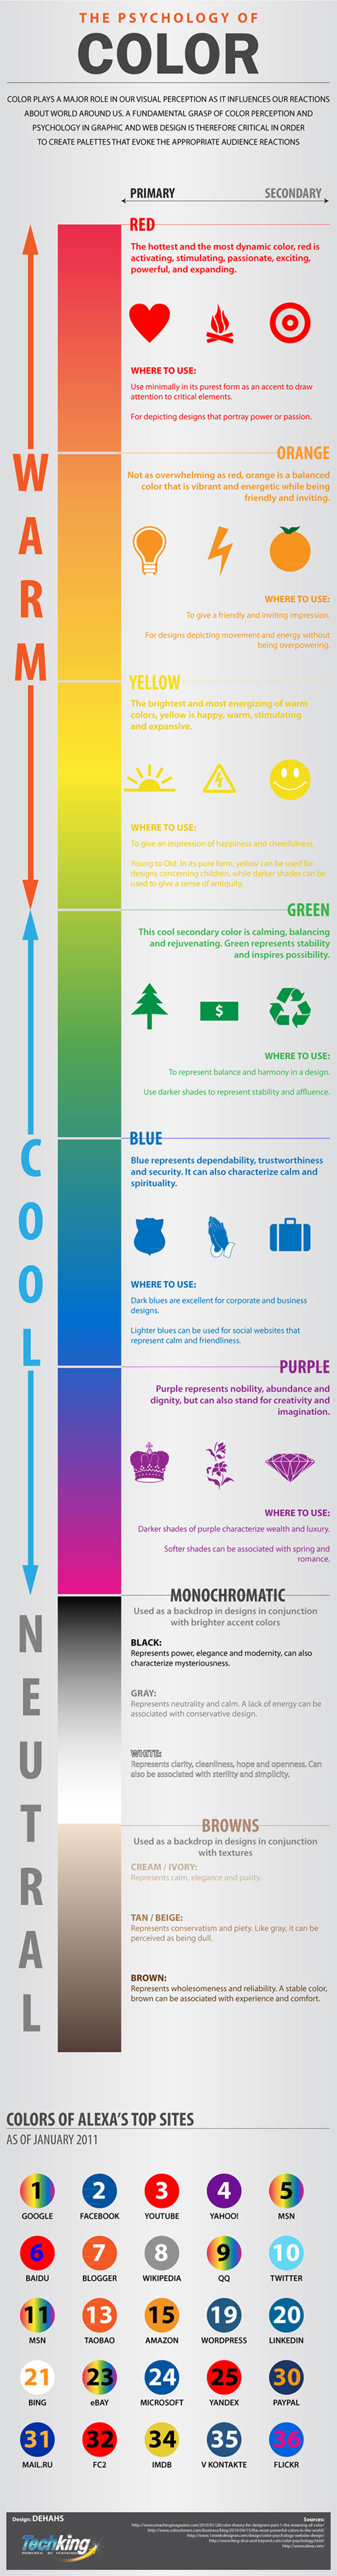 Infographic - Psychology of Color